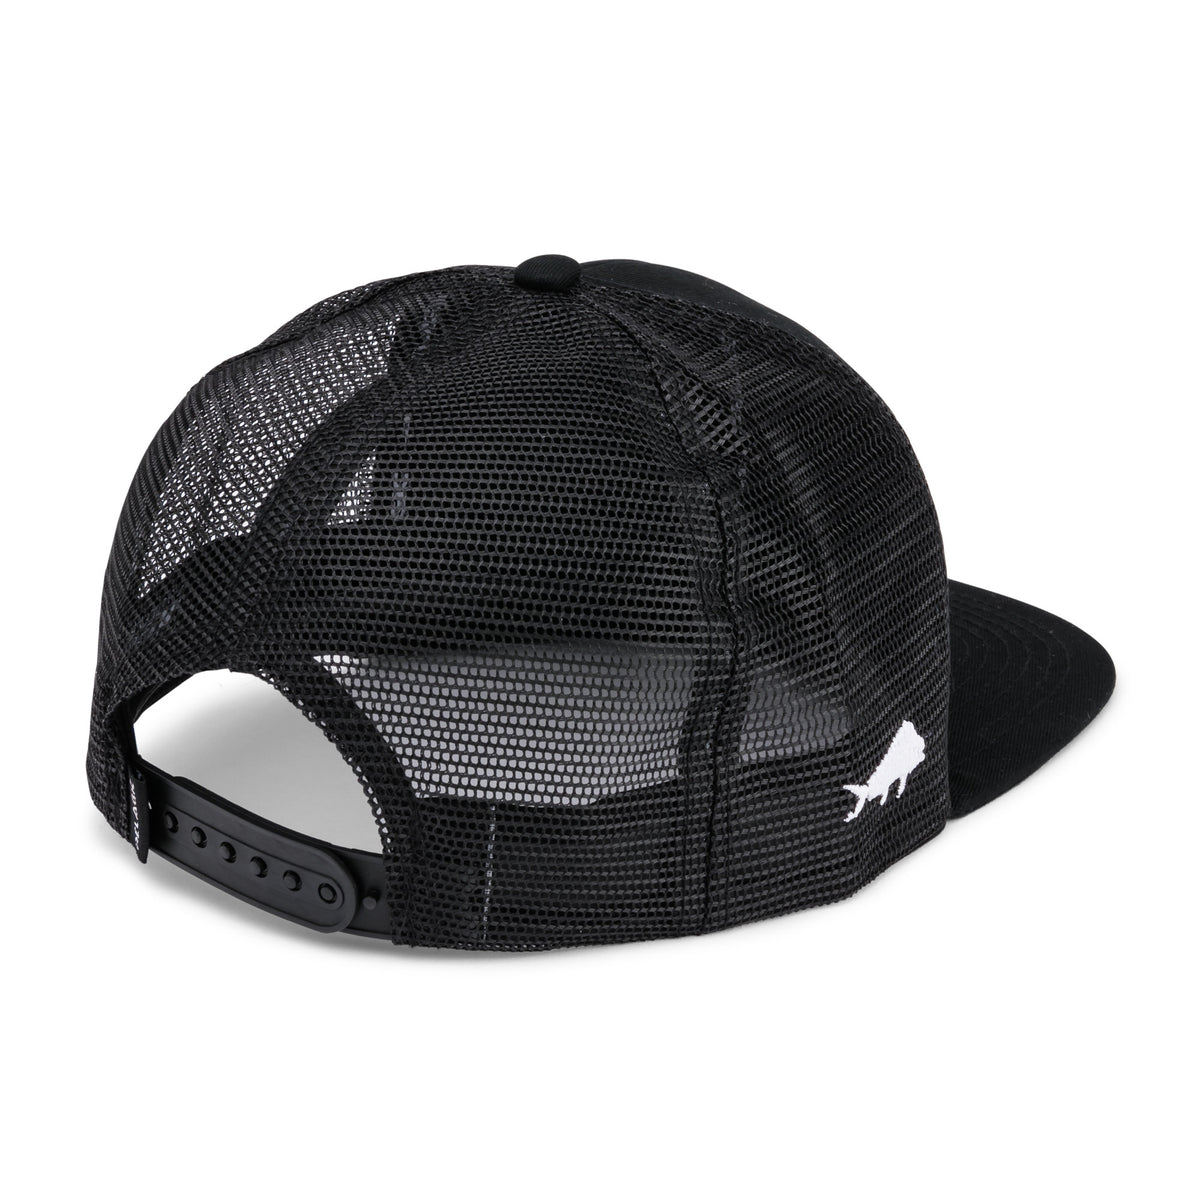 Worldwide Slayer Snapback Hat Big Image - 2